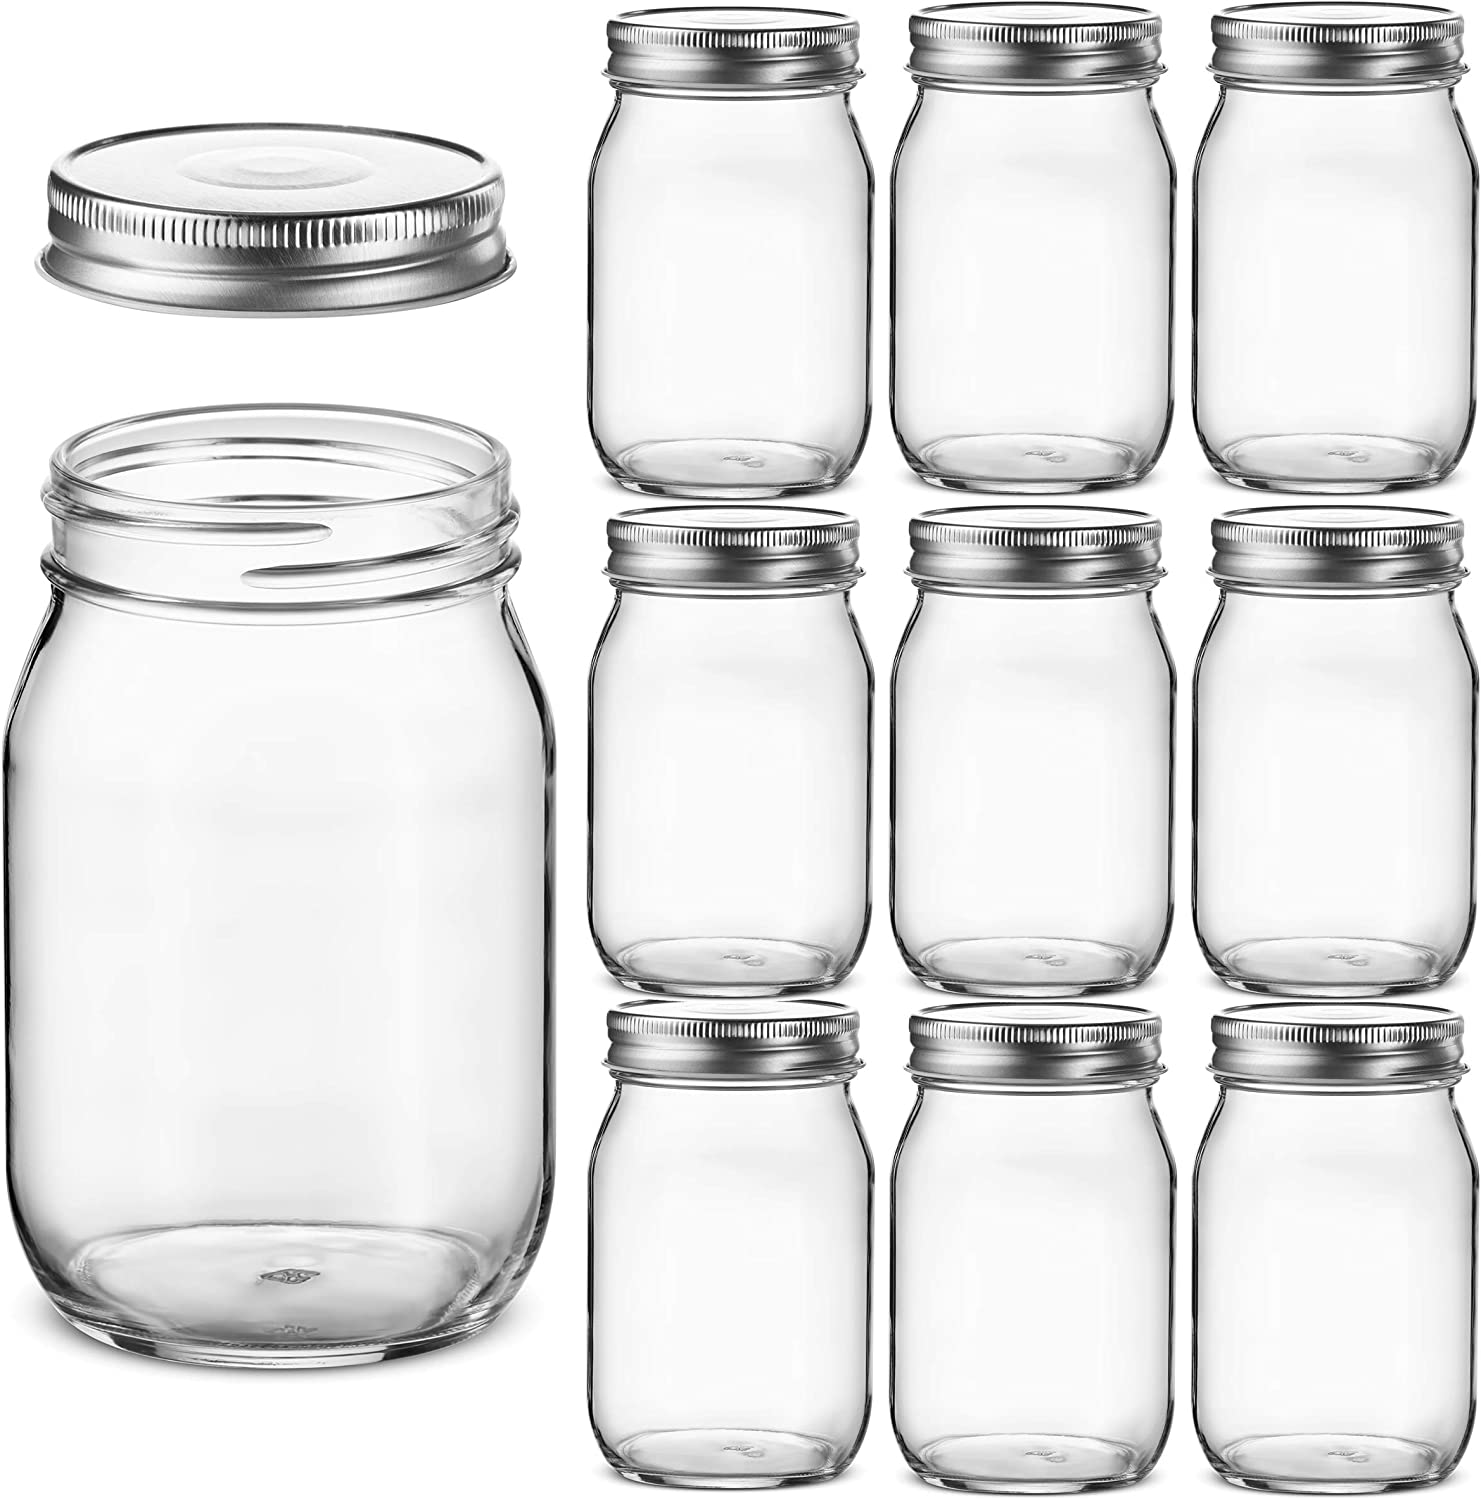 Glass Regular Mouth Mason Jars, 16 Ounce Glass Jars with Silver Metal Airtight Lids for Meal Prep, Food Storage, Canning, Drinking, Overnight Oats, Jelly, Dry Food, Spices, Salads, Yogurt (10 Pack)